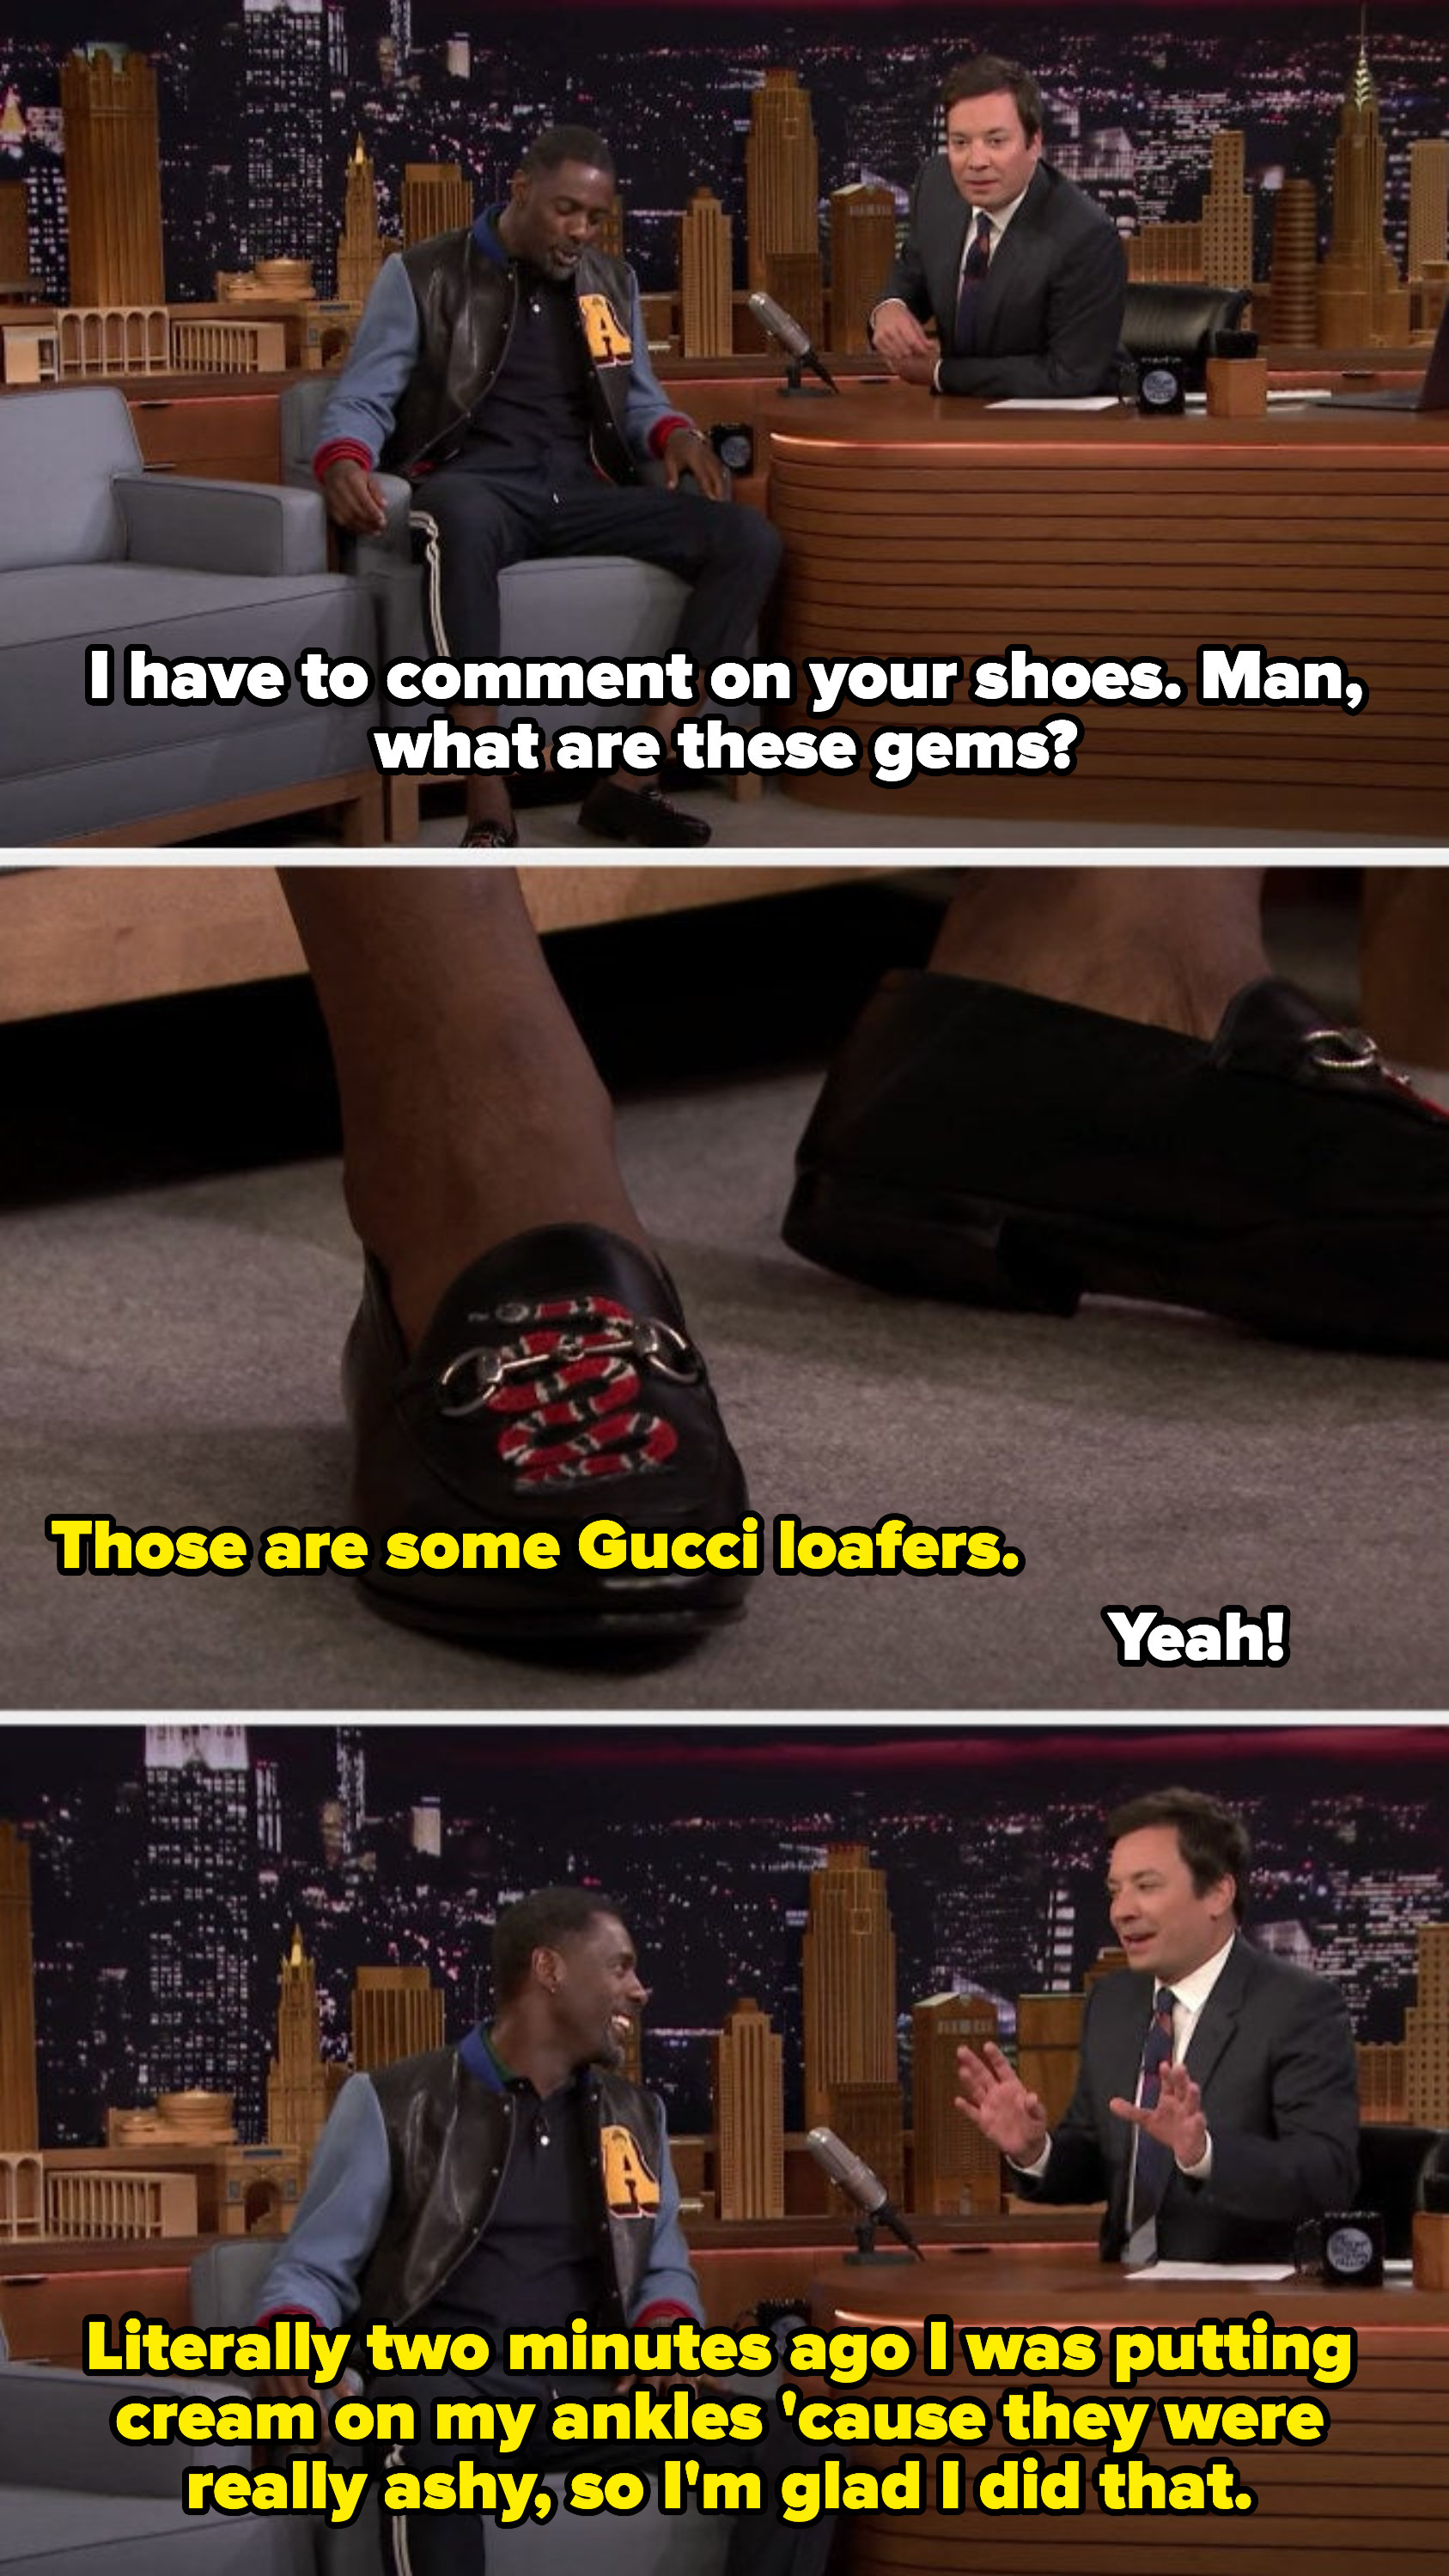 Fallon pointing out Idris's Gucci shoes, the camera doing a close-up, and Idris saying he just put cream on his ankles because they were ashy and he was so glad he did